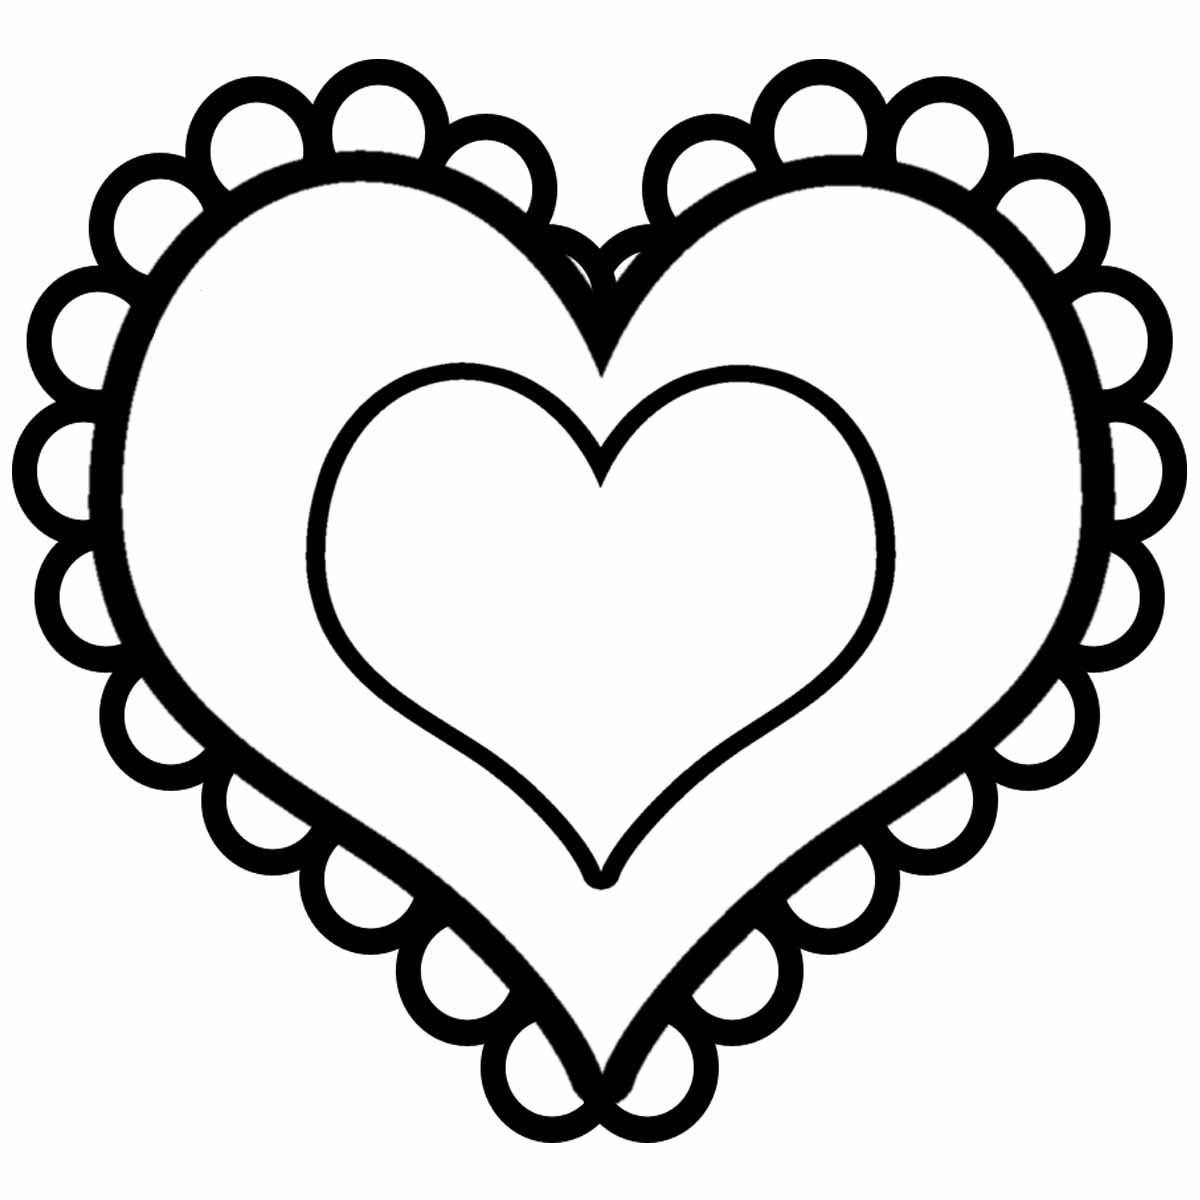 kids heart coloring pages free printable heart coloring pages for kids kids heart coloring pages